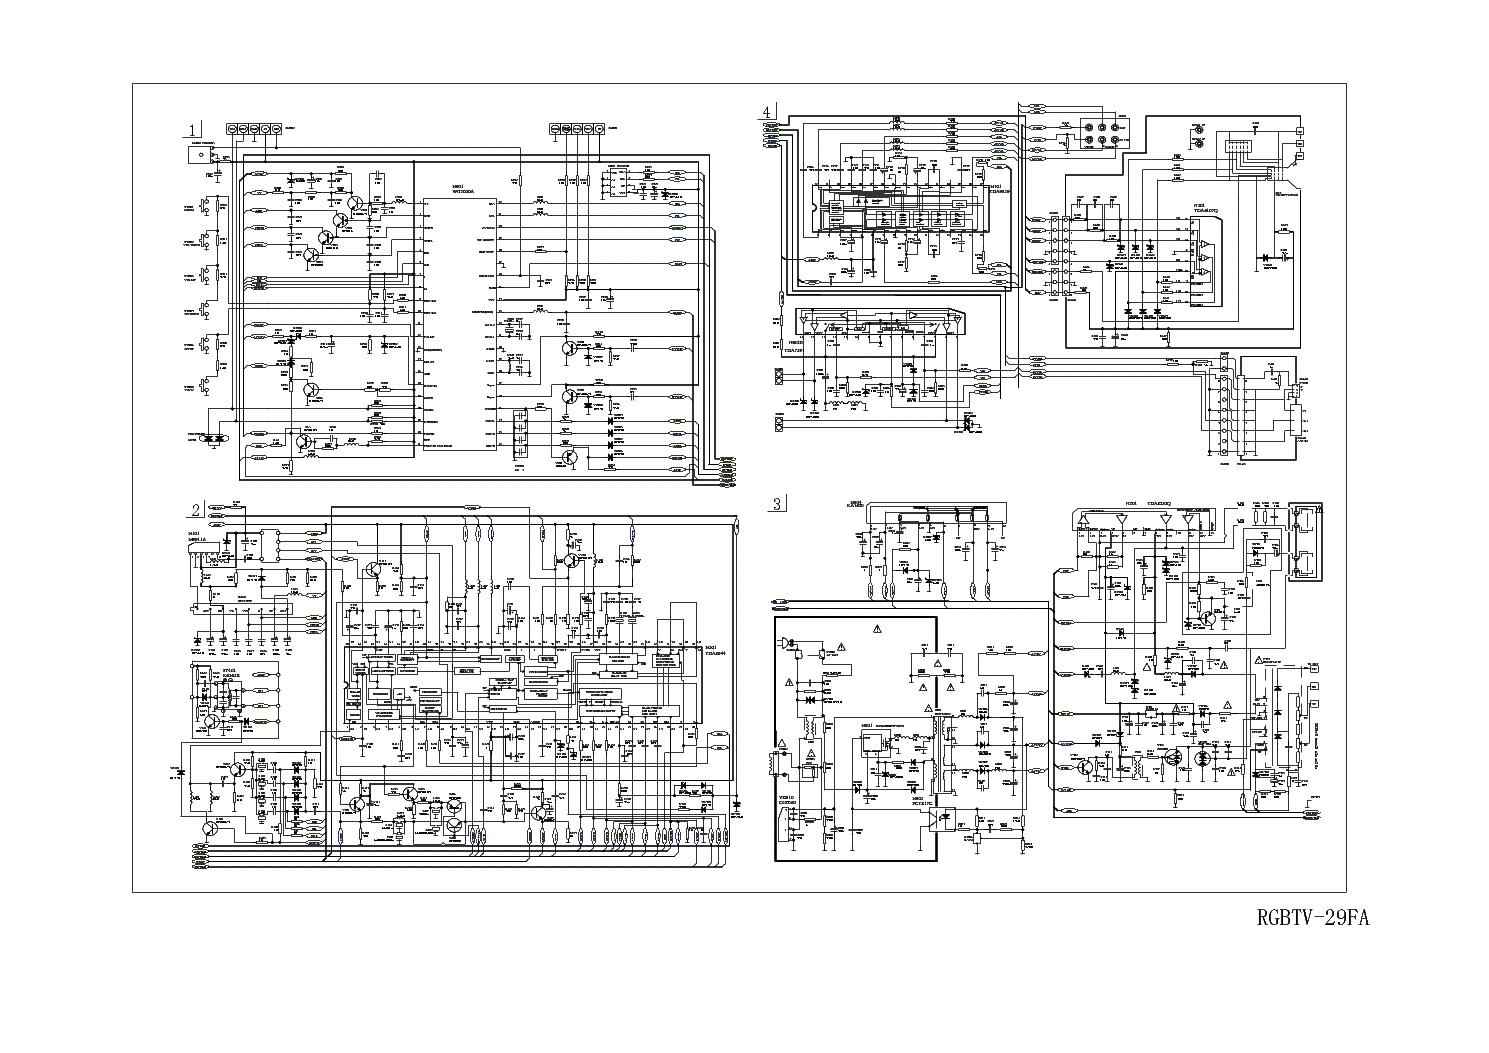 haier tv circuit board diagrams schematics pdf service tv schematic tv schematic